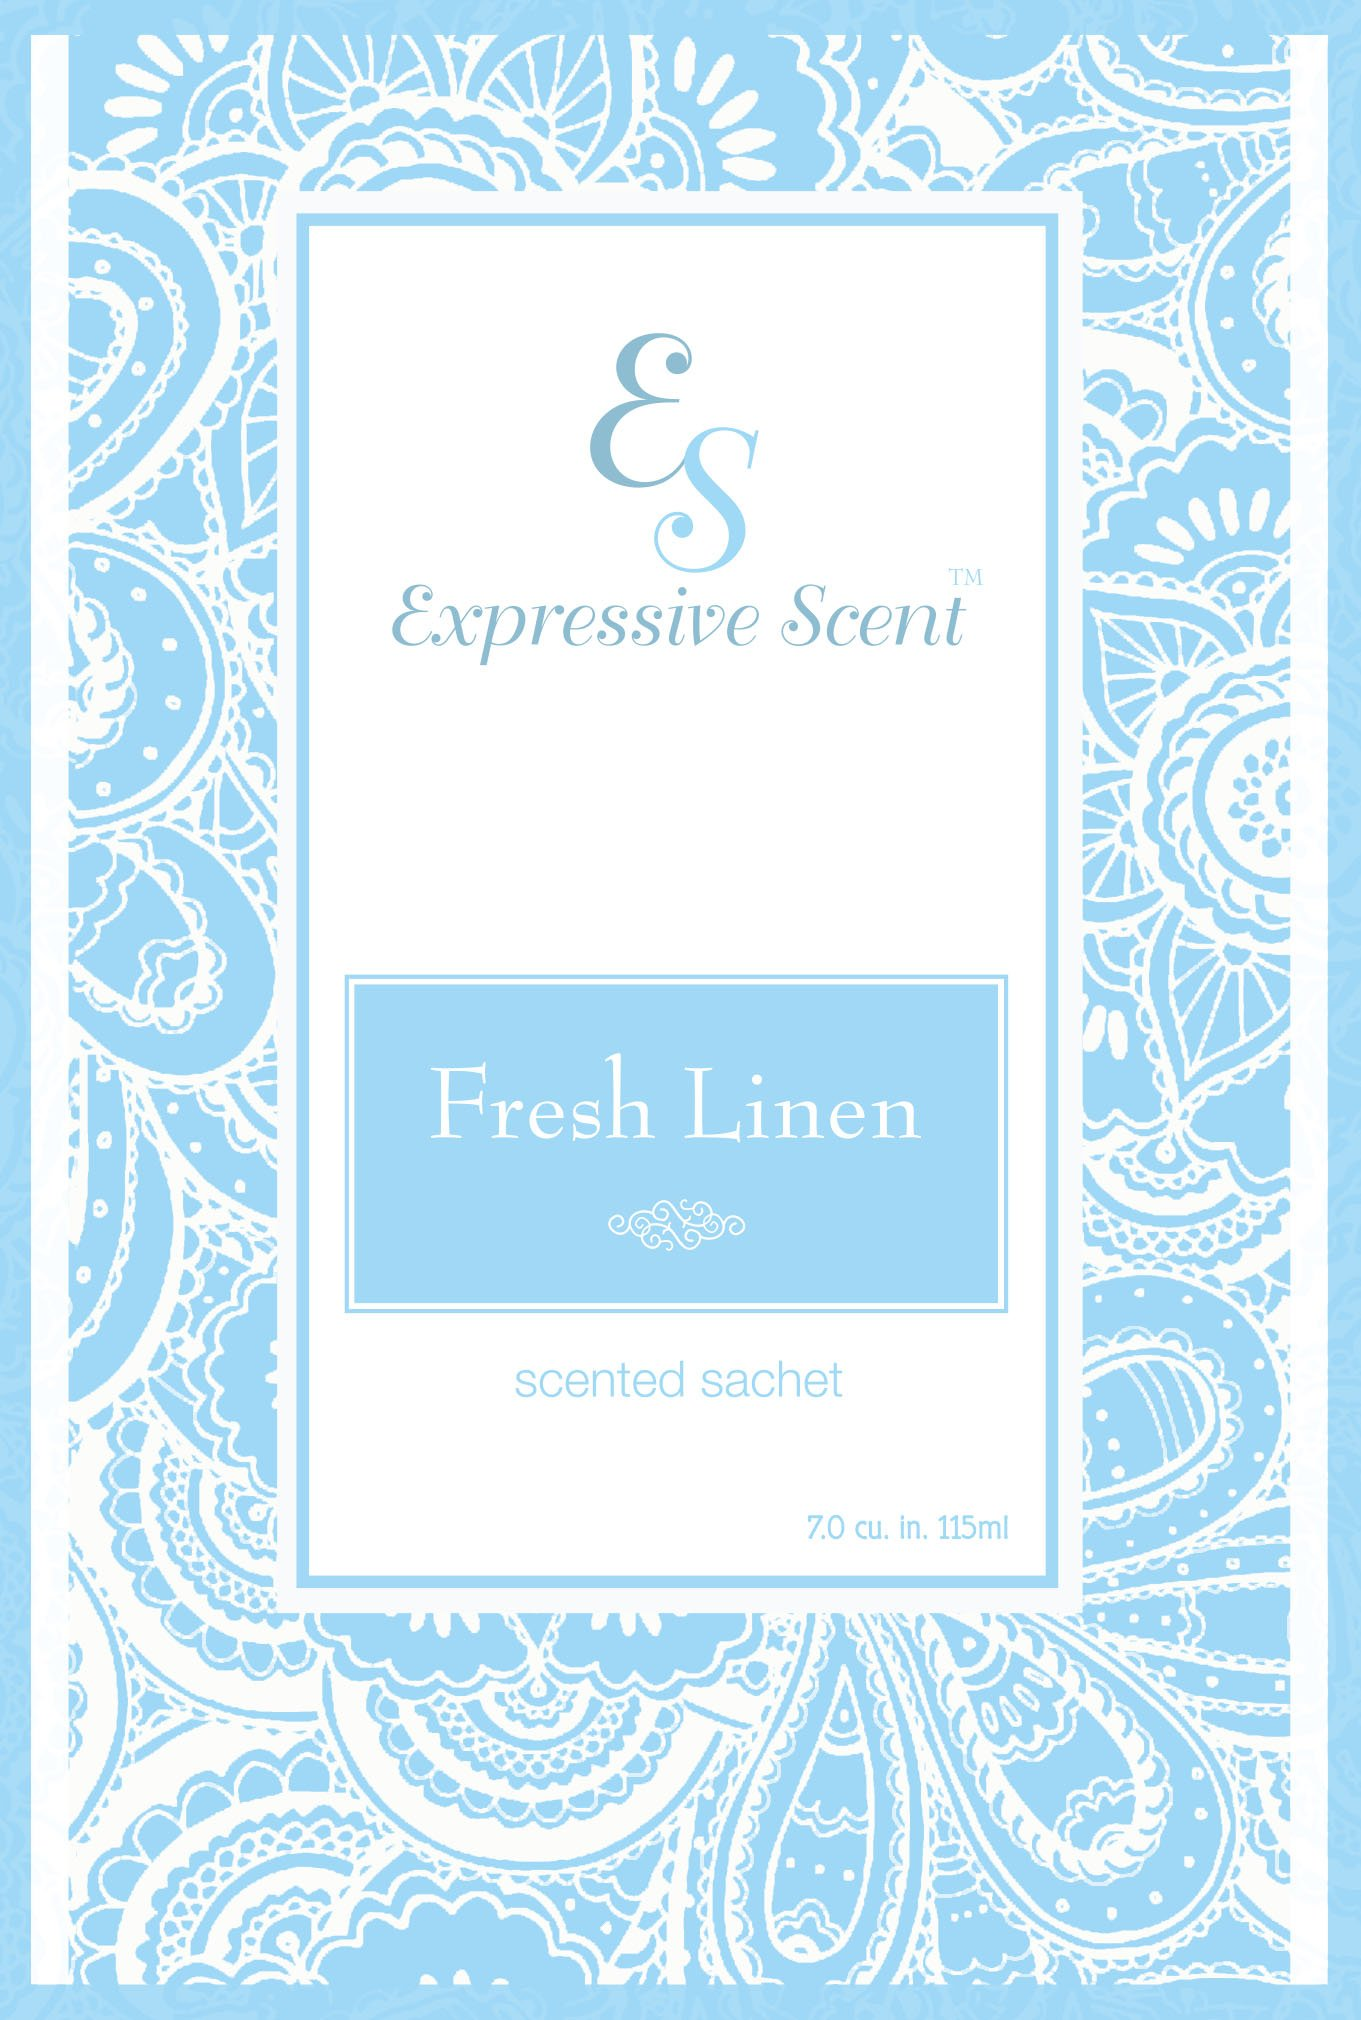 6 Pack Fresh Linen Large Scented Sachet Envelope By Expressive Scent